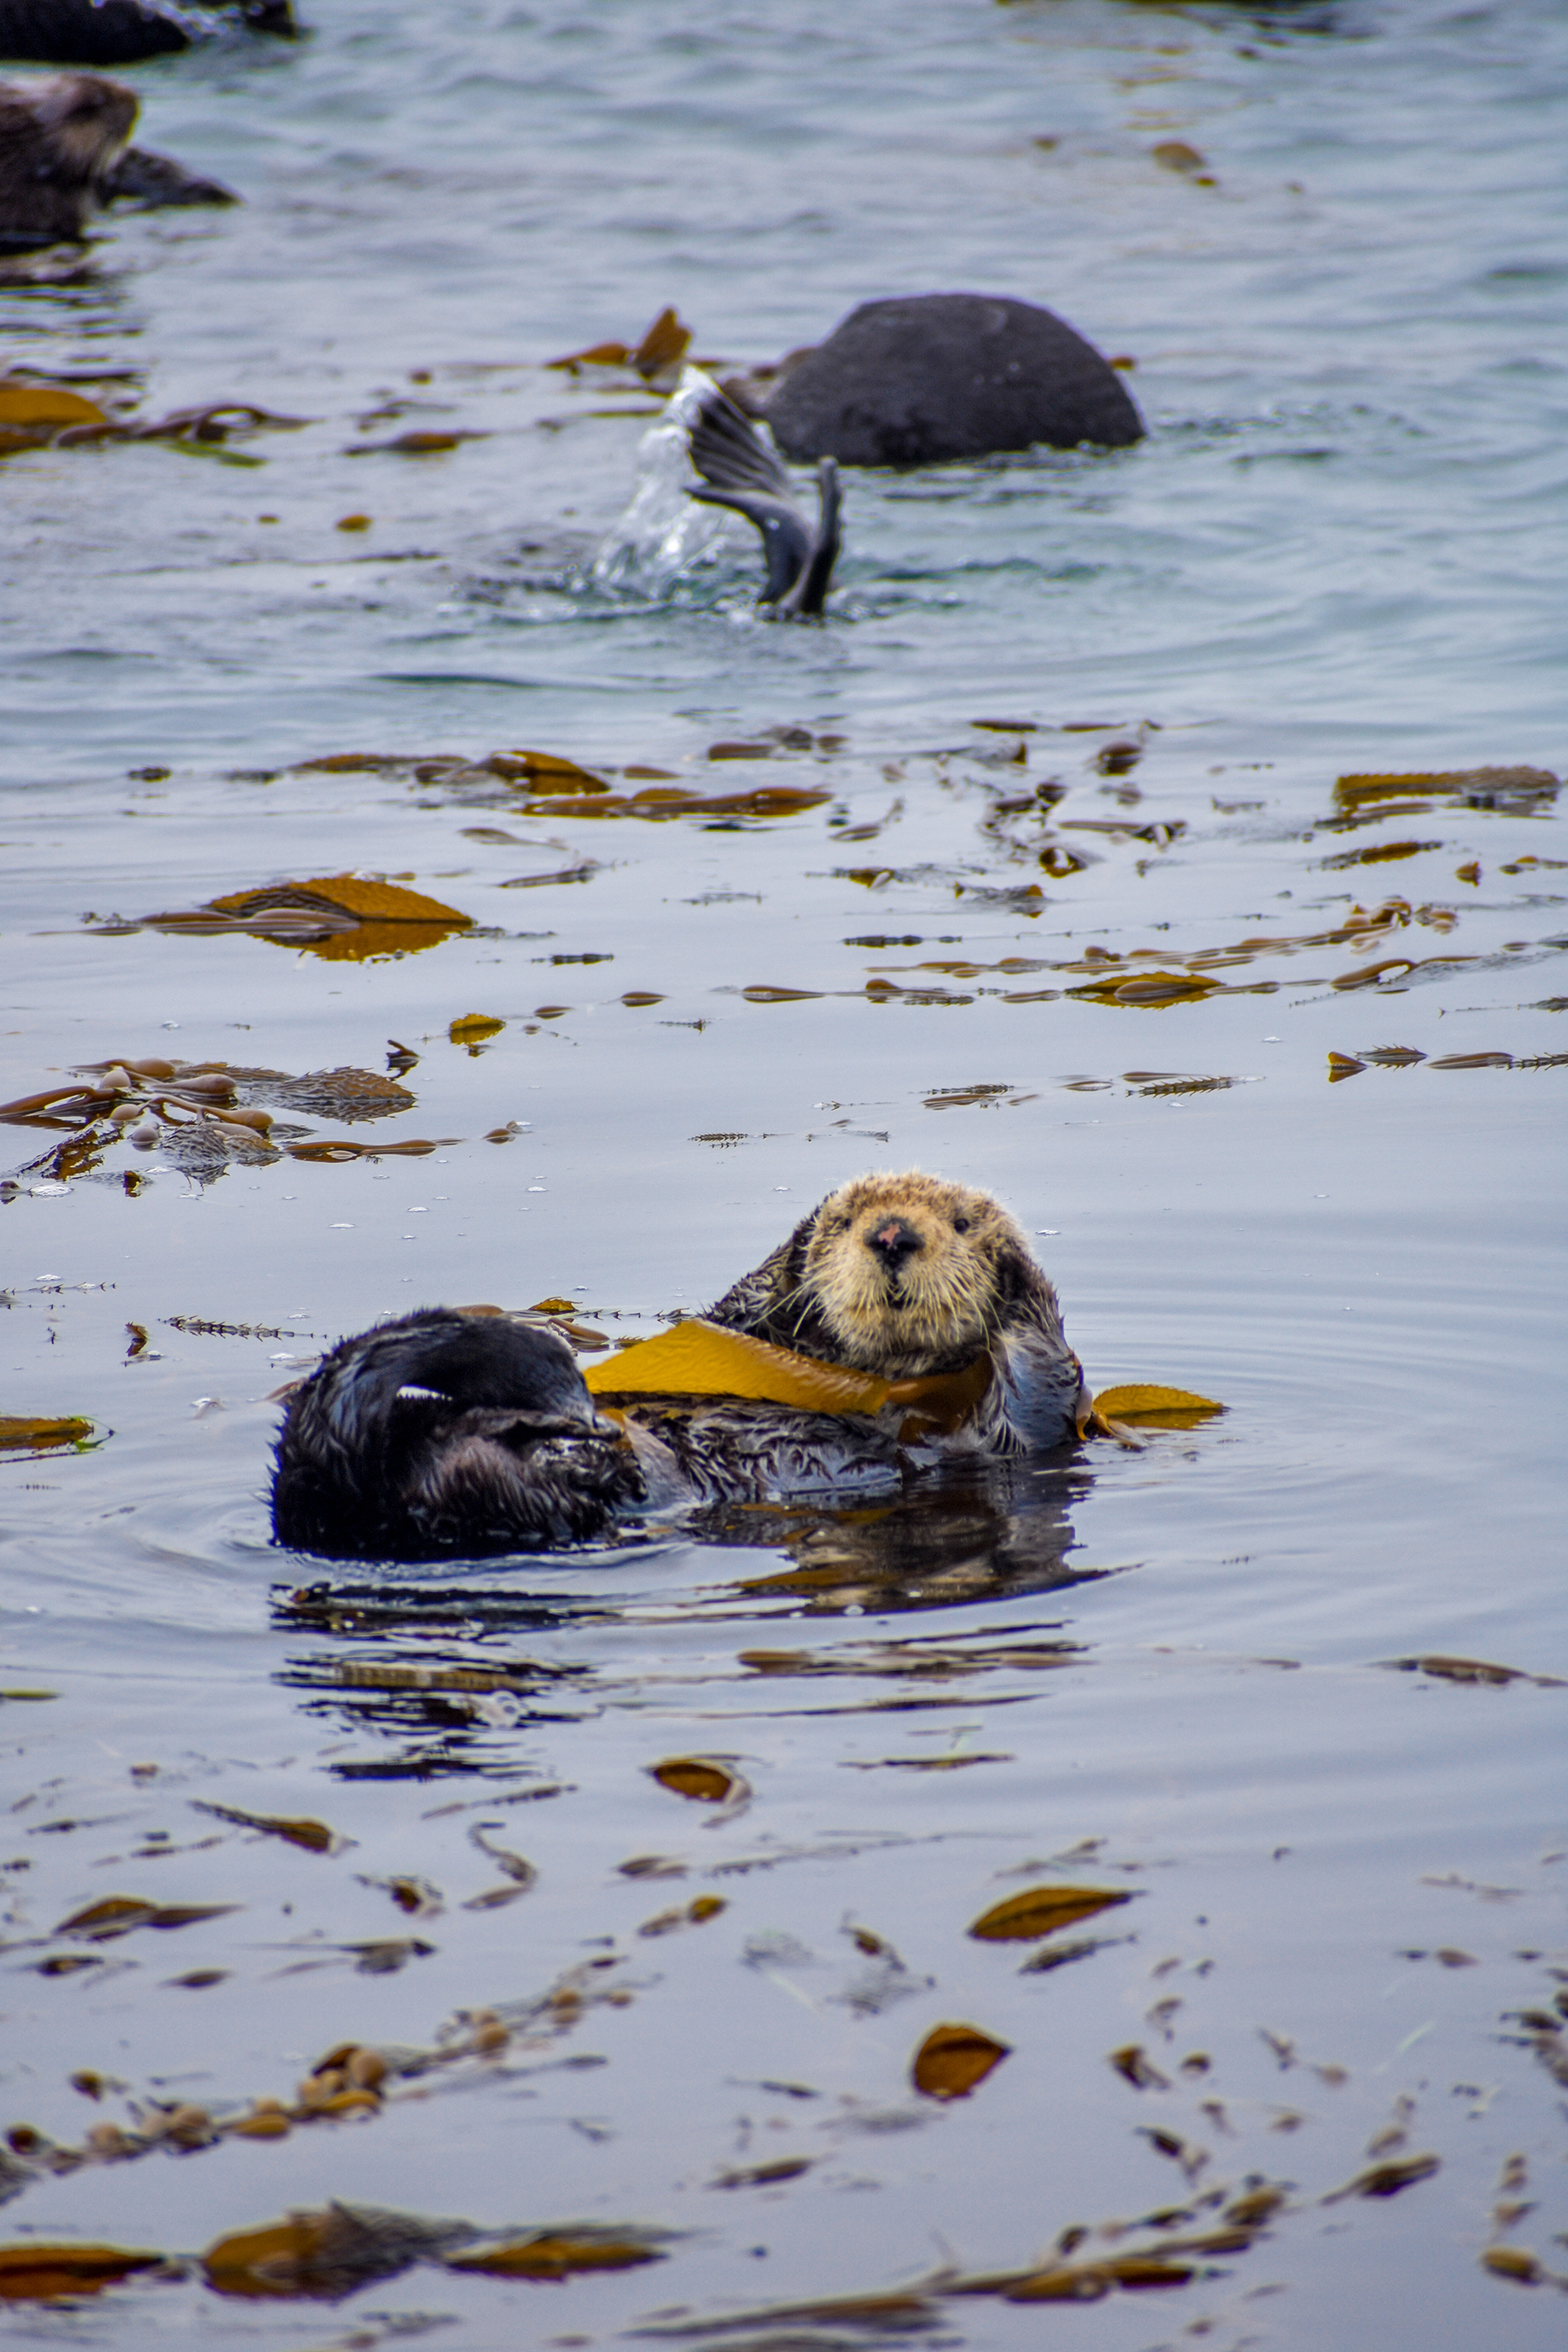 A sleepy sea otter is awoken by the splash of his friends diving.